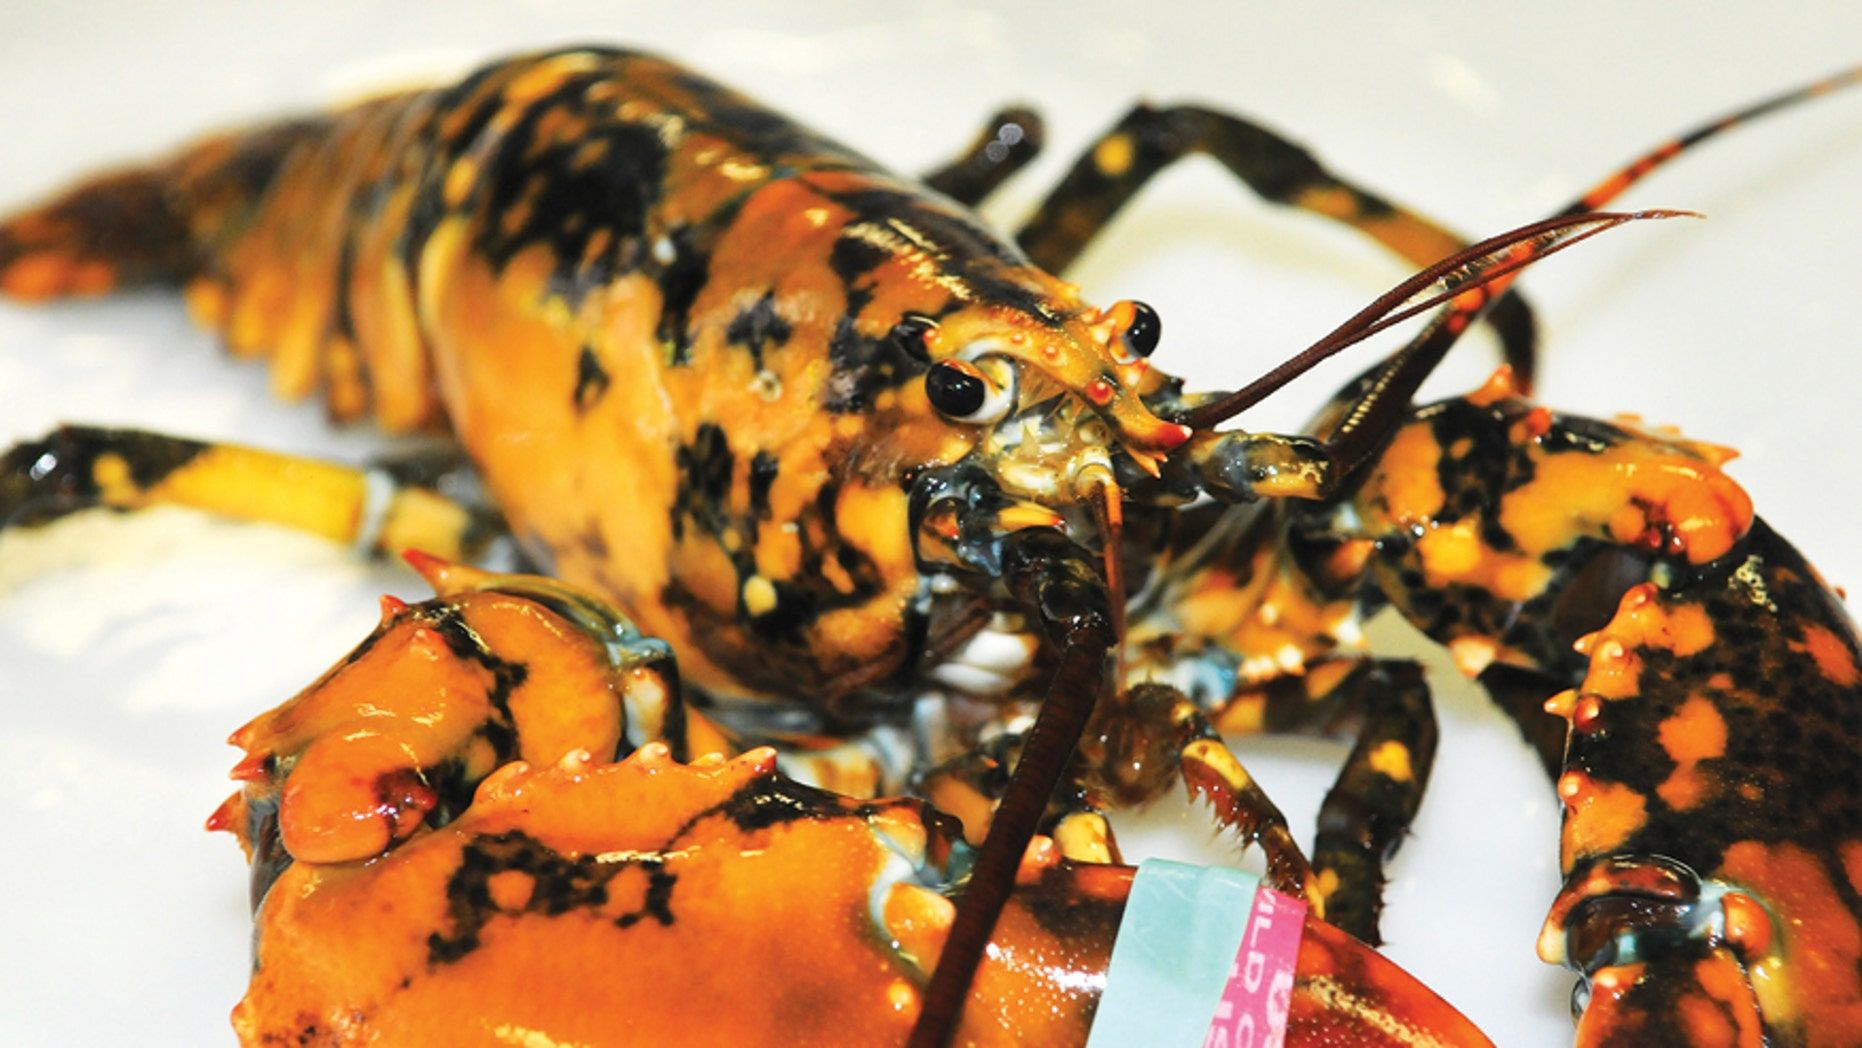 """Ellen Goethel, a marine biologist and owner of the Oceanarium said calico lobsters are the """"second most rare lobster"""" in the world, after albino lobsters."""